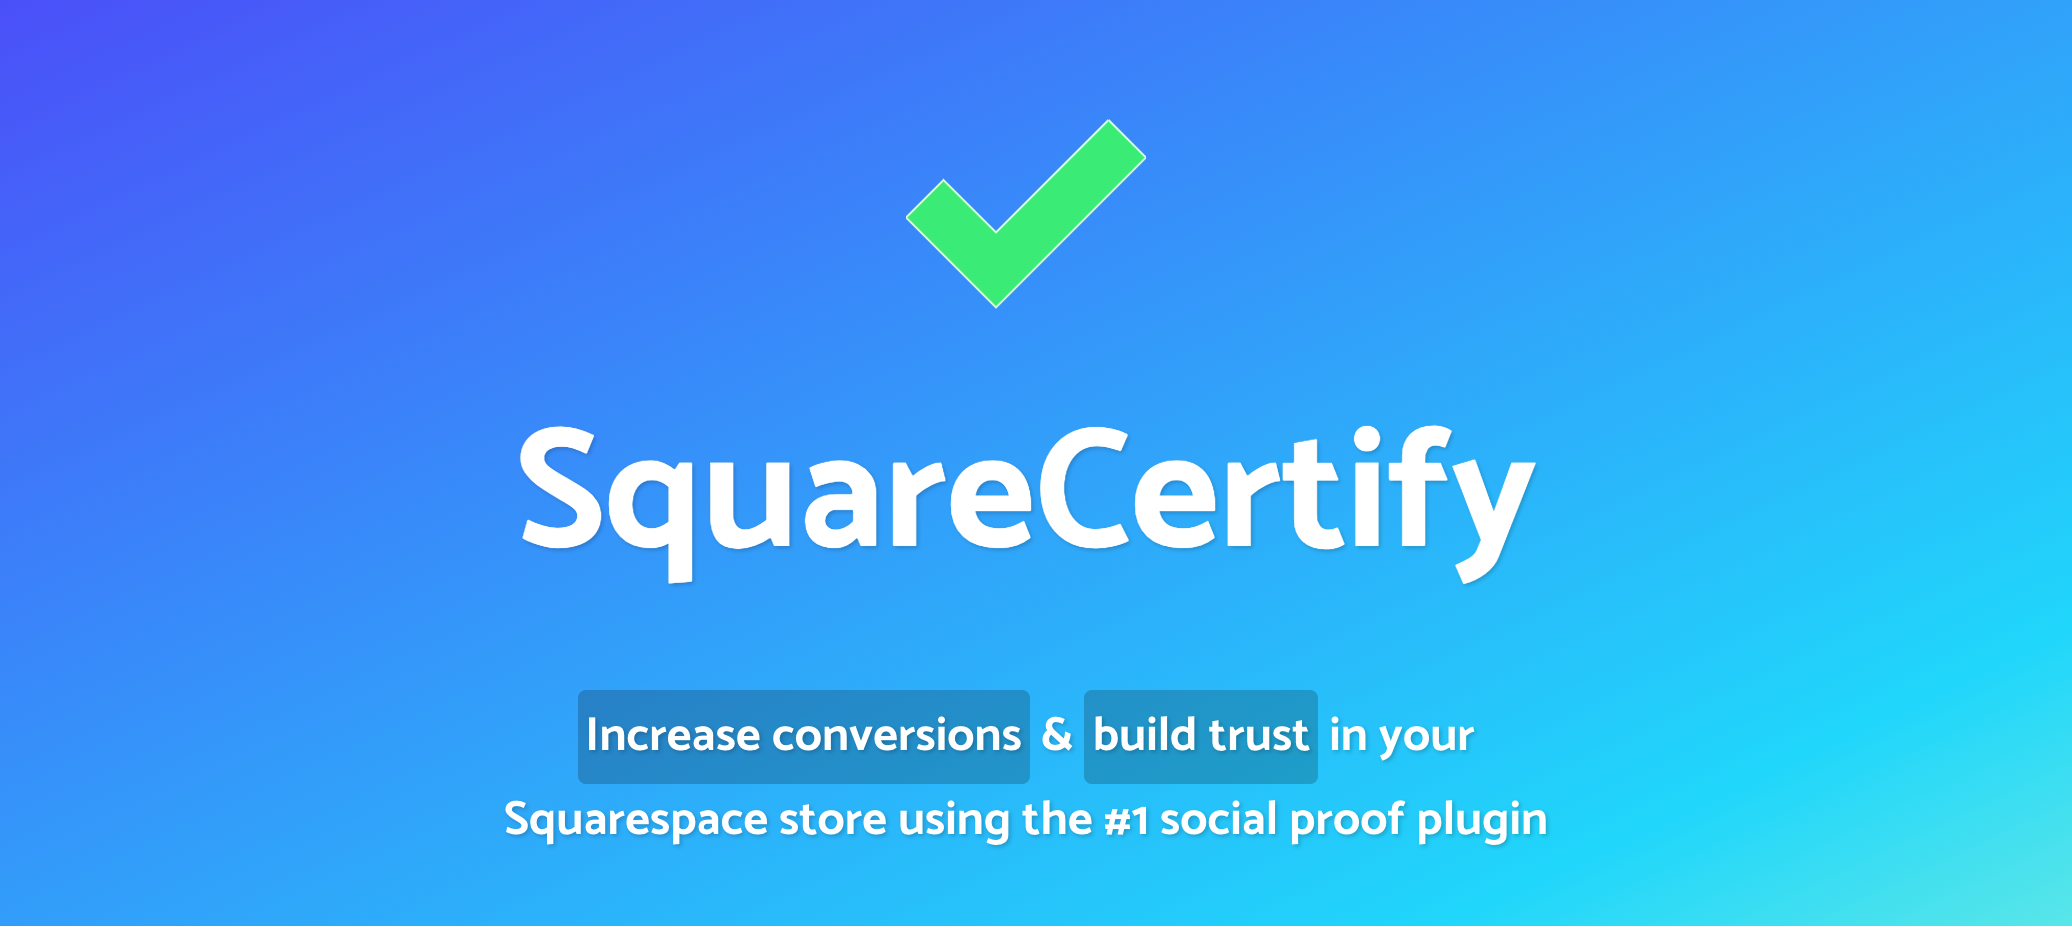 SquareCertify social proof widget